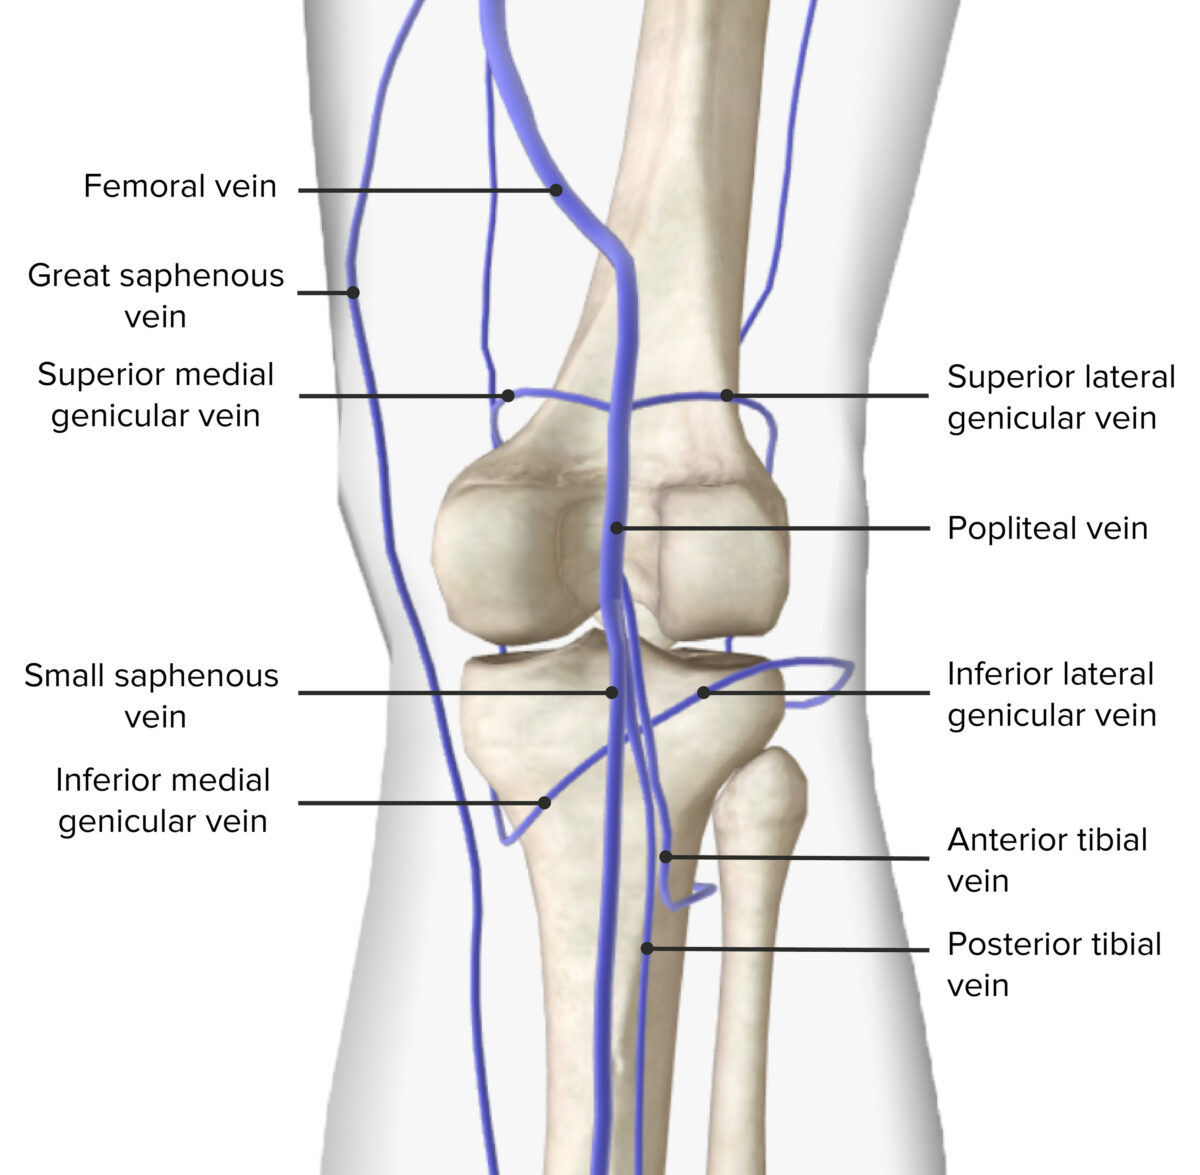 Venous drainage of the popliteal fossa